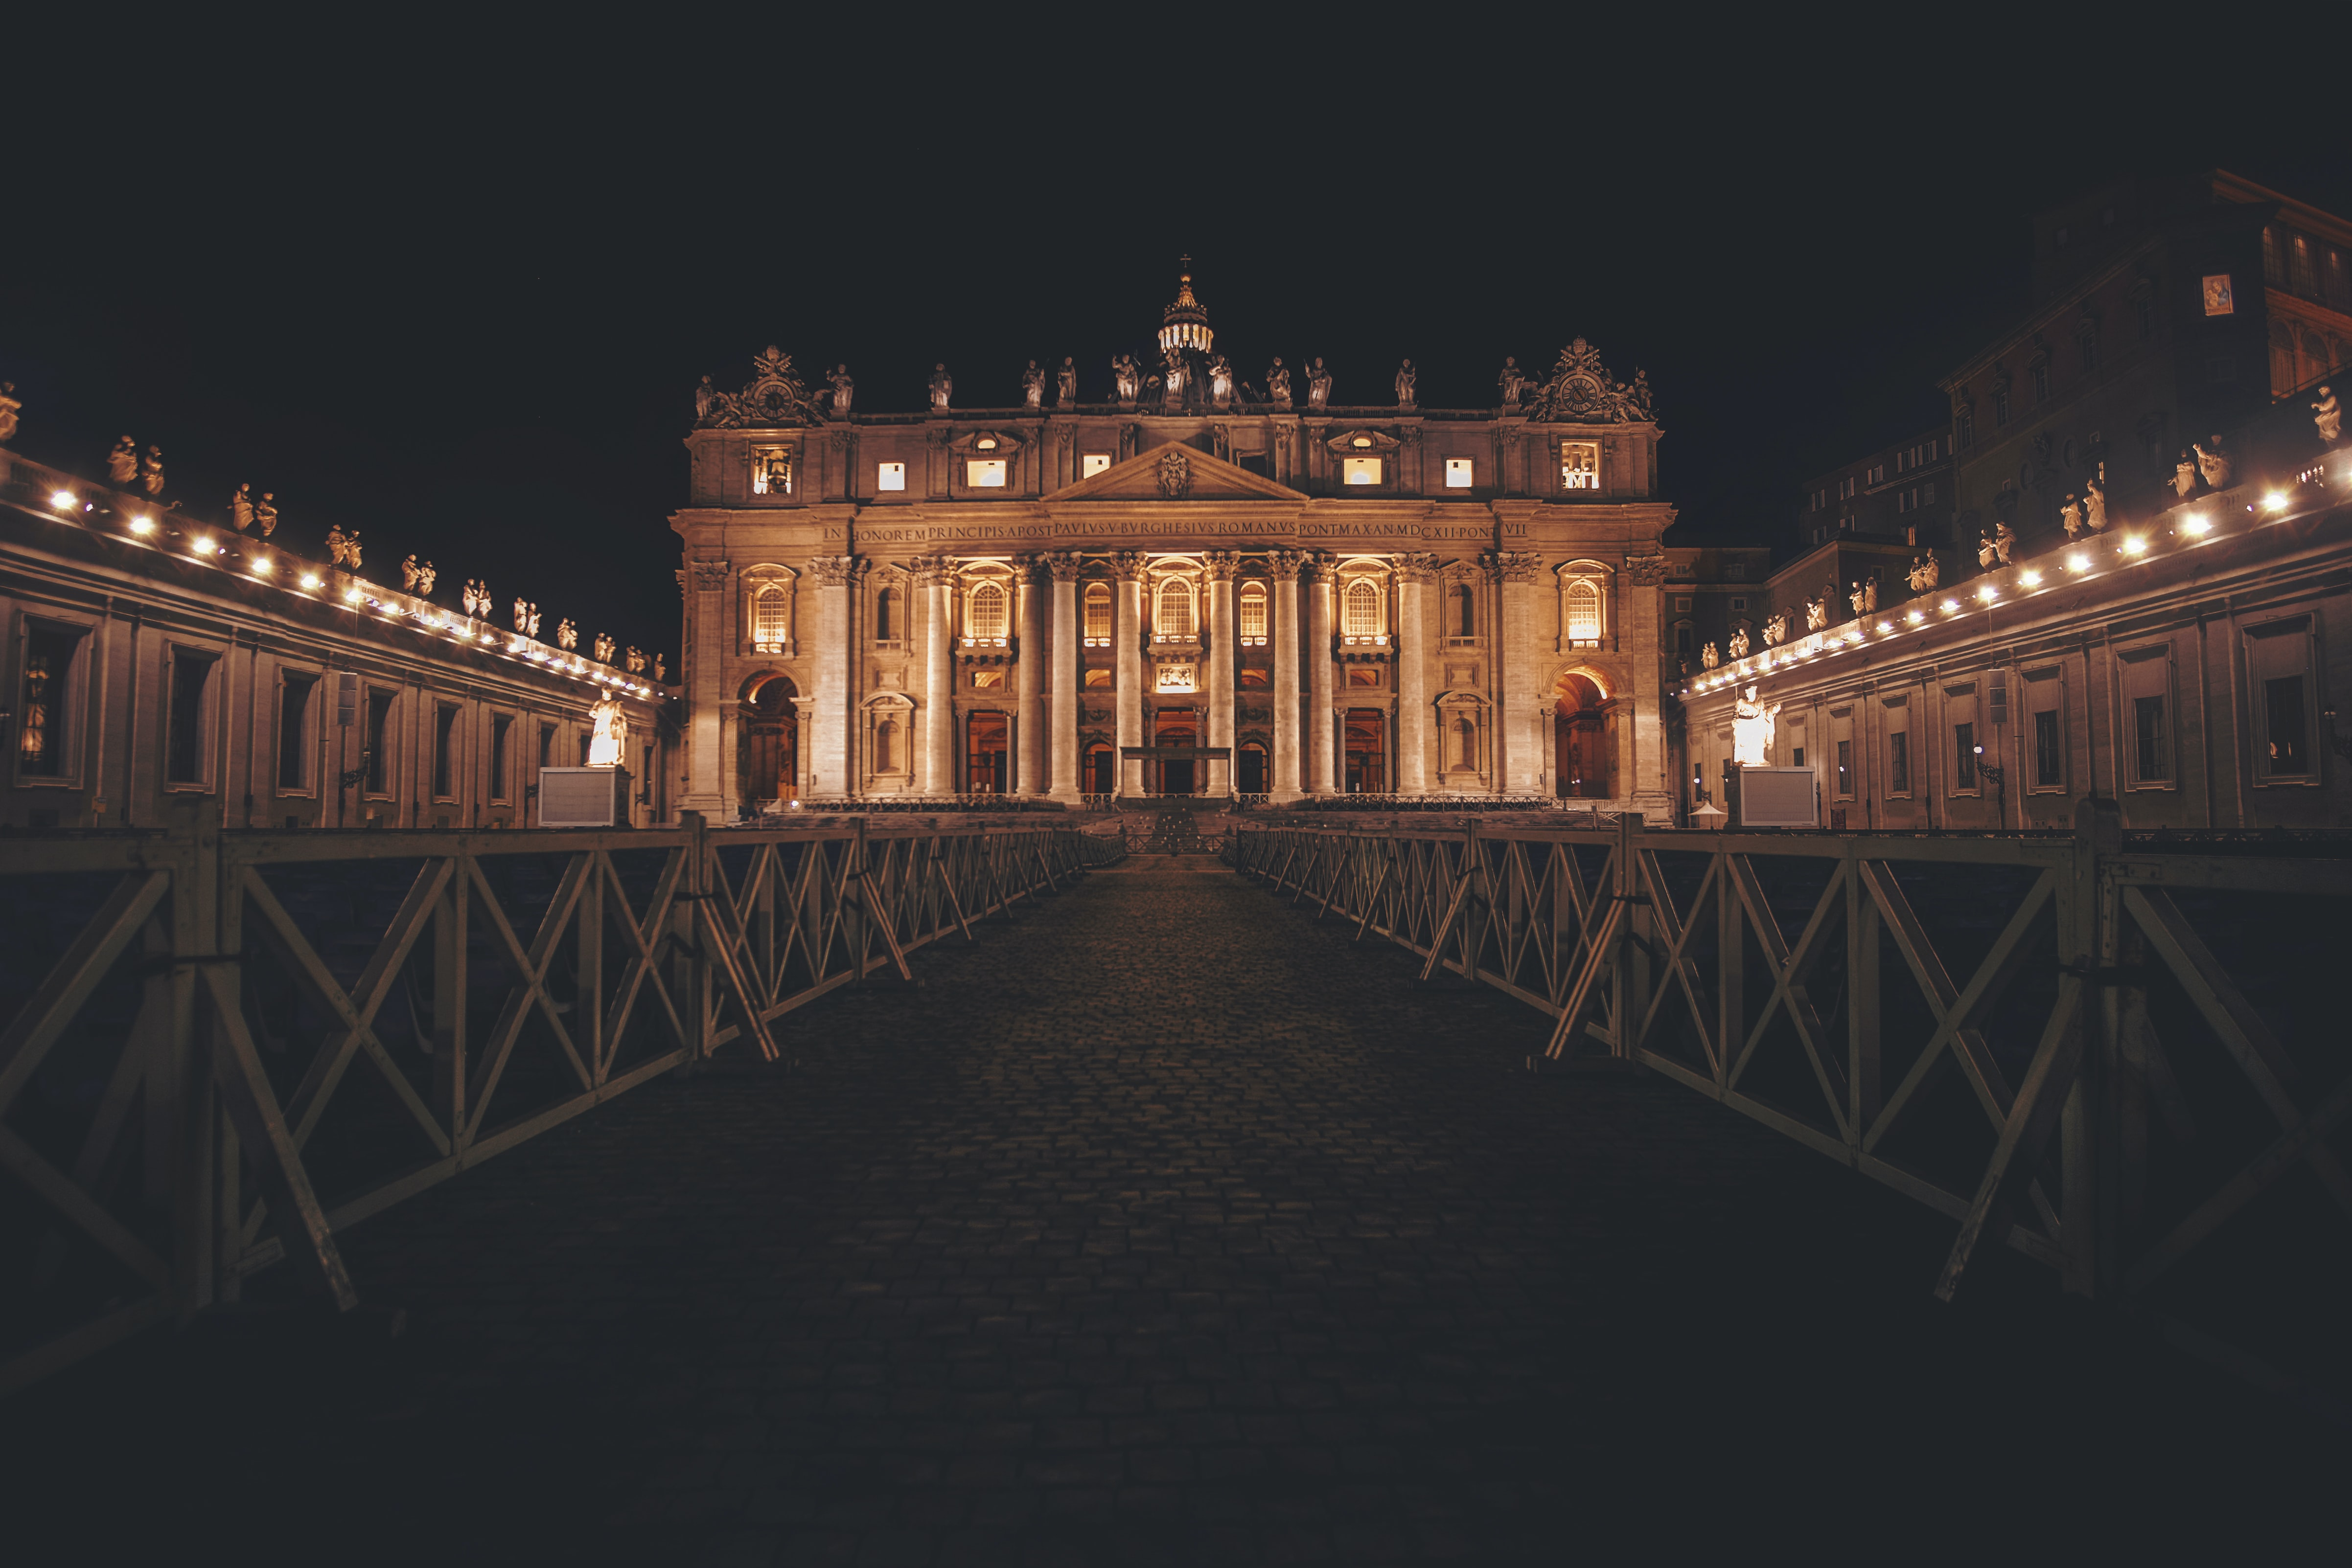 pathway leading to Saint Peter's Basilica at night time